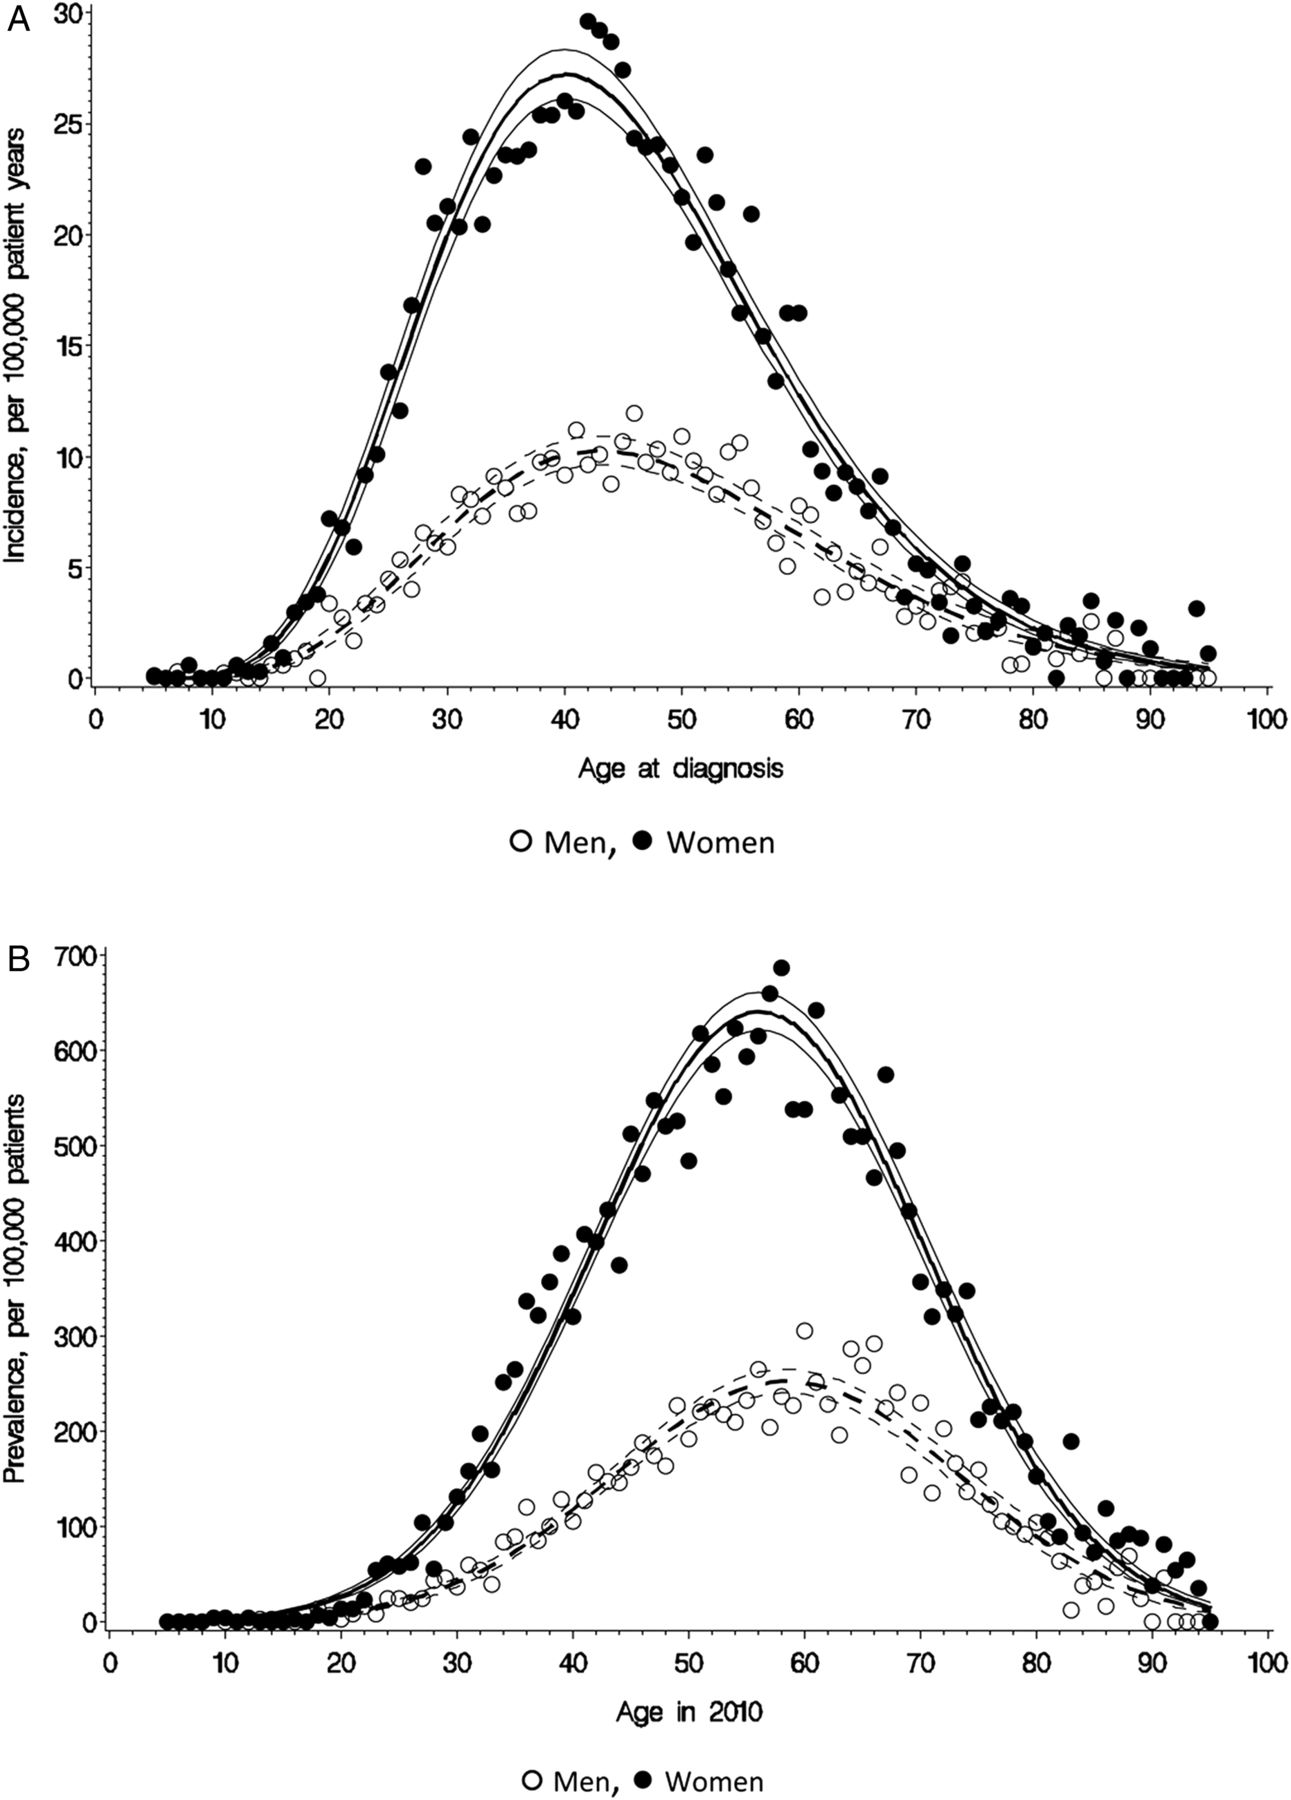 Incidence and prevalence of multiple sclerosis in the UK 1990–2010